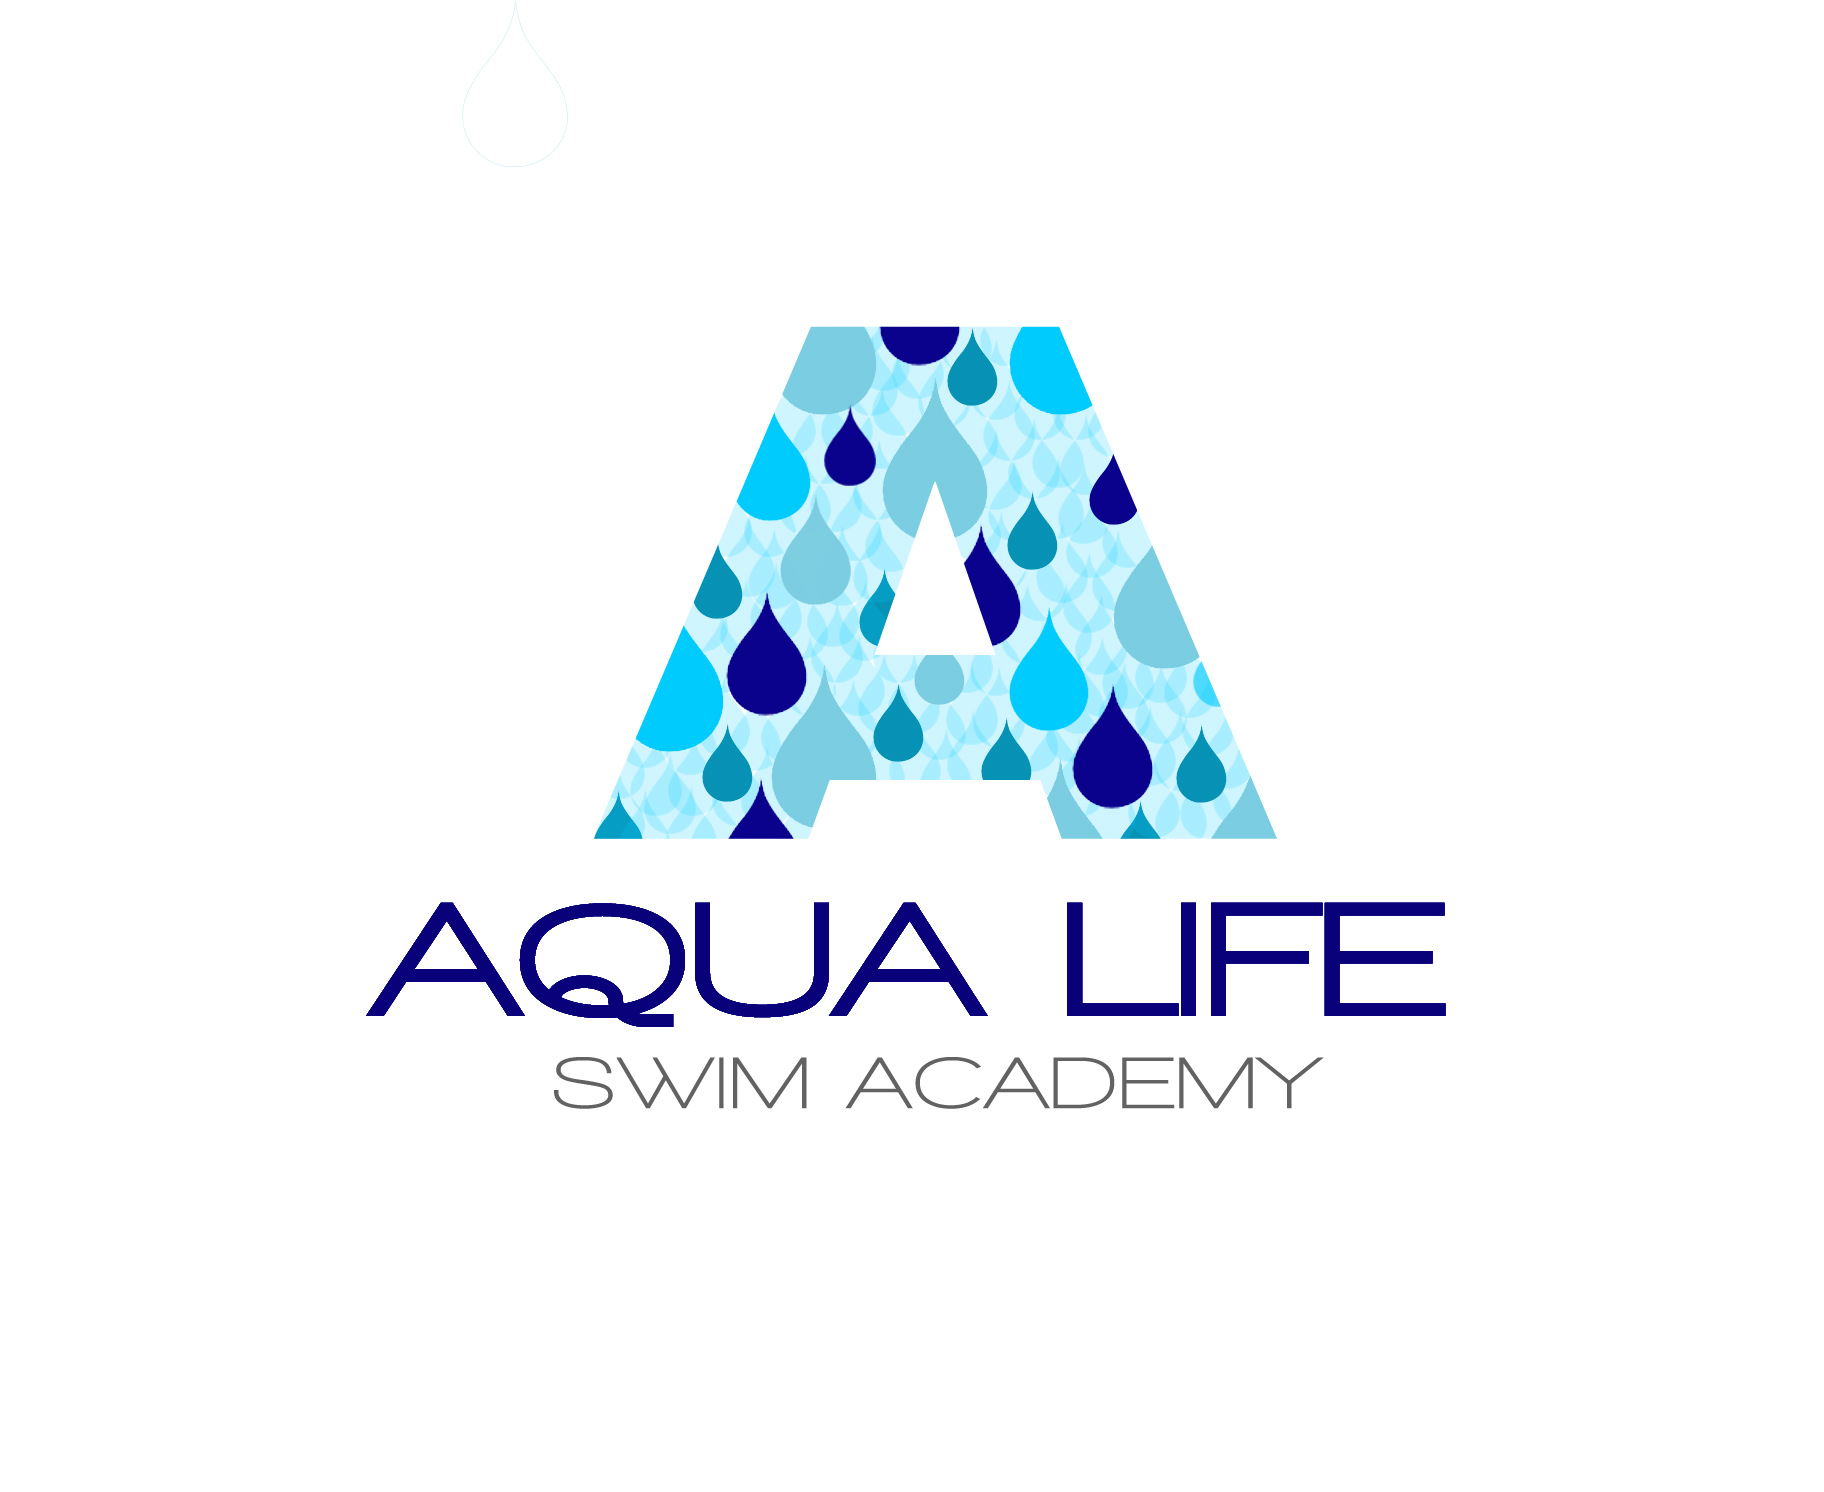 Logo Design by Lama Creative - Entry No. 130 in the Logo Design Contest Artistic Logo Design Wanted for The Aqua Life Swim Academy.